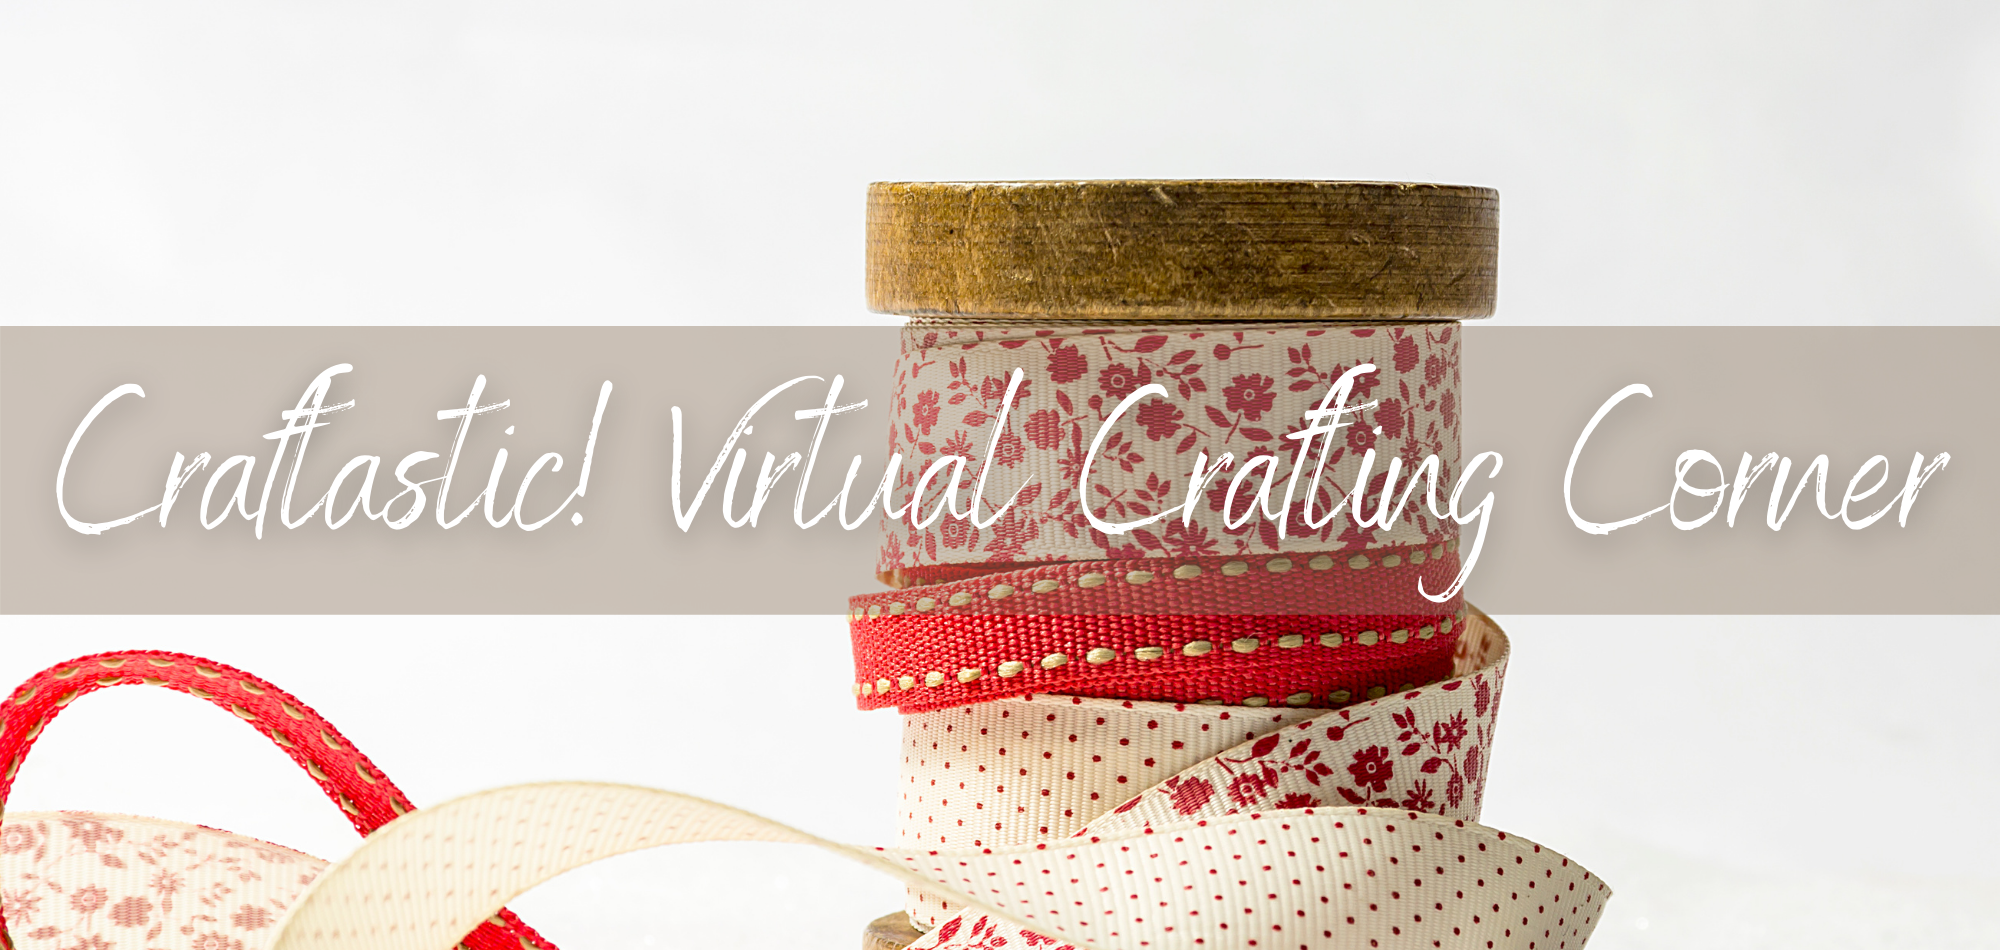 Craftastic! Virtual Crafting Corner